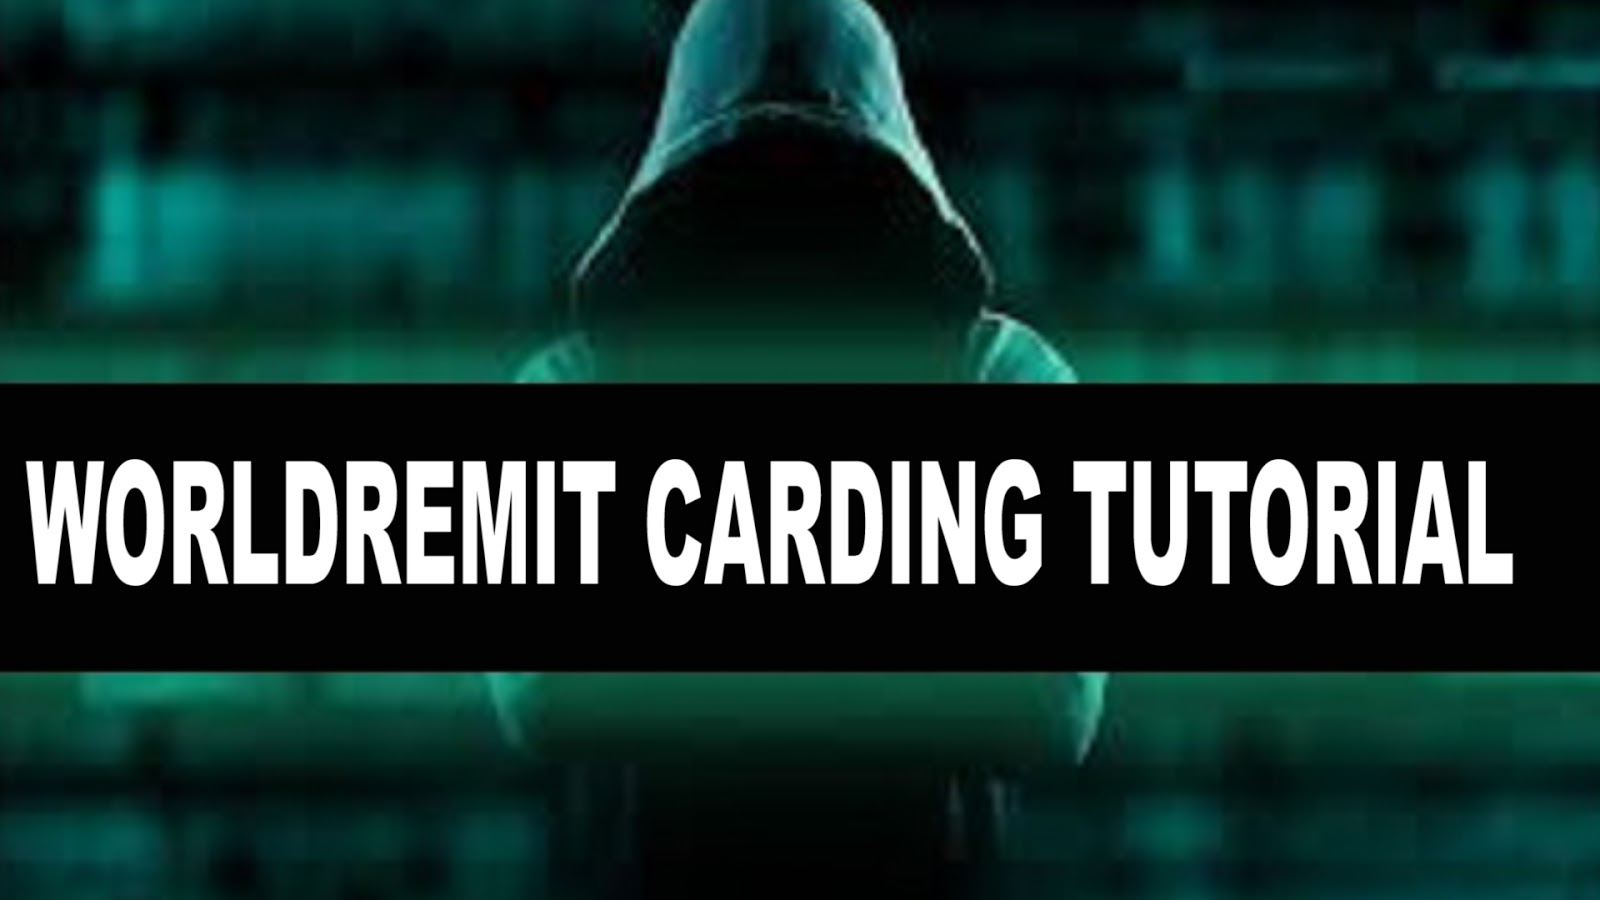 World-remit Carding Latest Tutorial - KpoyagaHack | Best Blog To